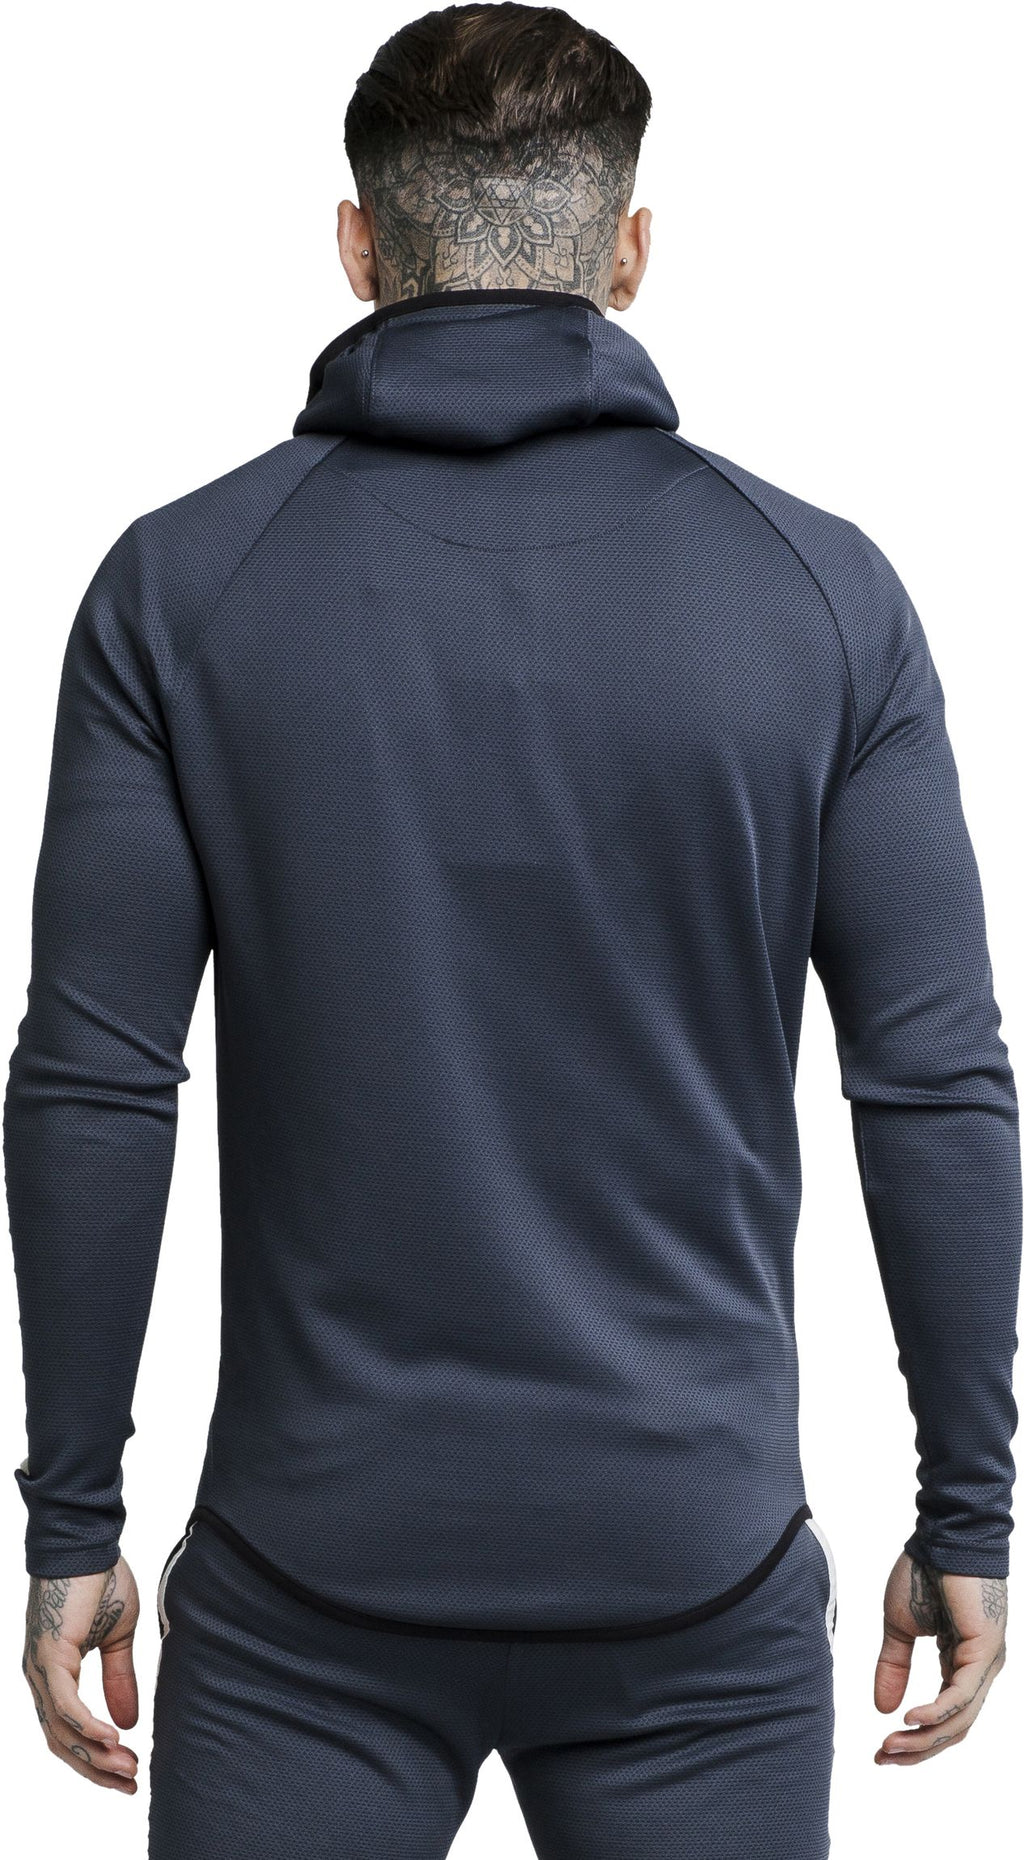 Sik Silk Tech Athlete Hoodie Black